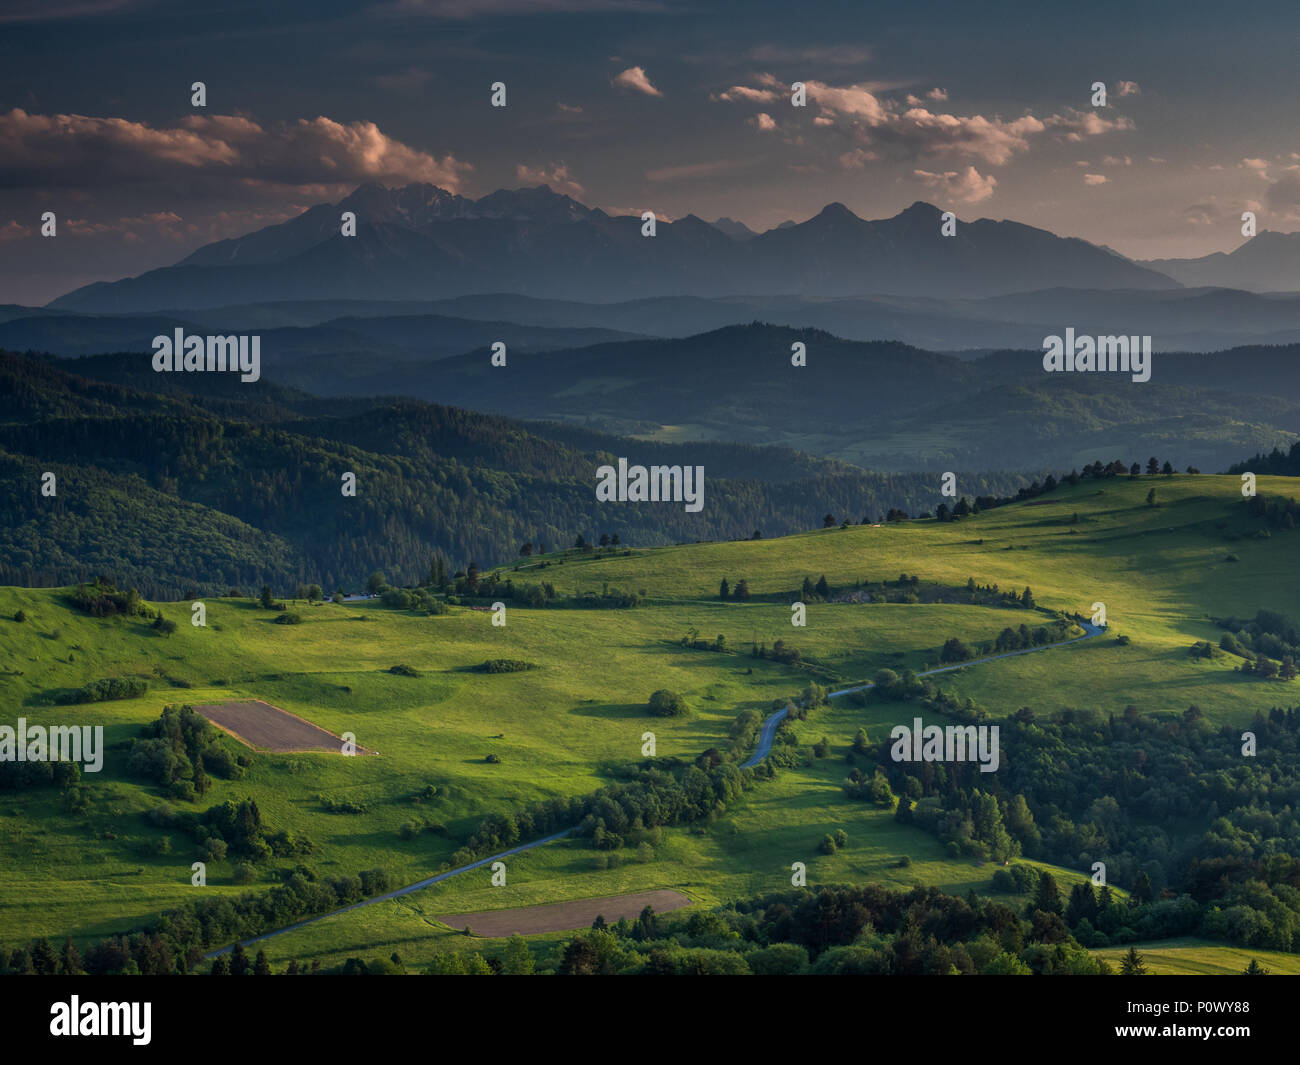 A fairytale view in Pieniny National Park - Stock Image